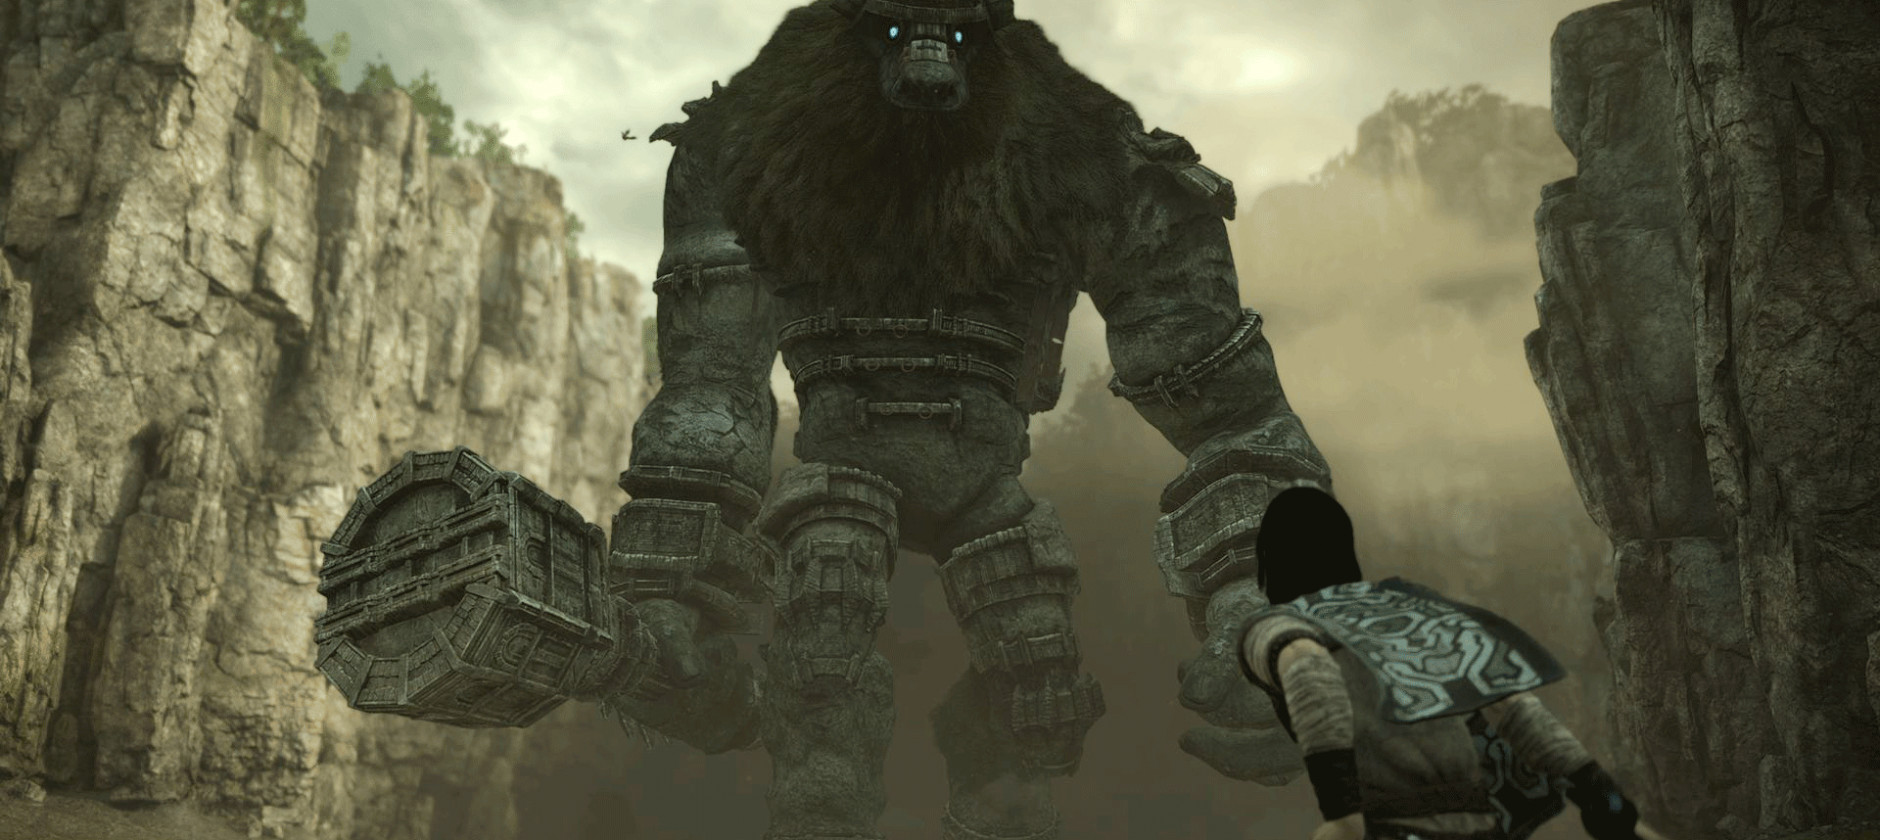 Shadow of the Colossus: un capolavoro PlayStation ricostruito da zero per PS4